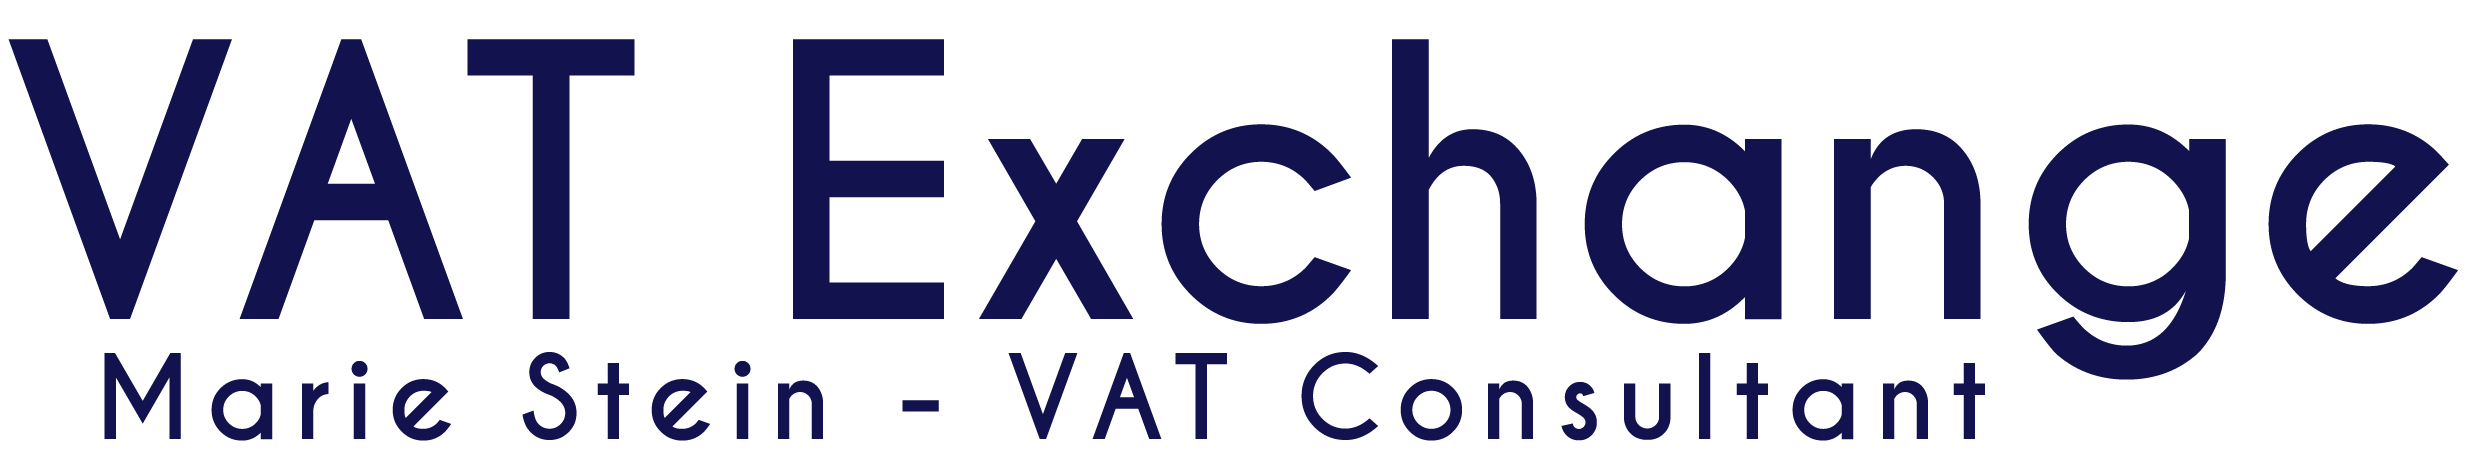 VAT Exchange